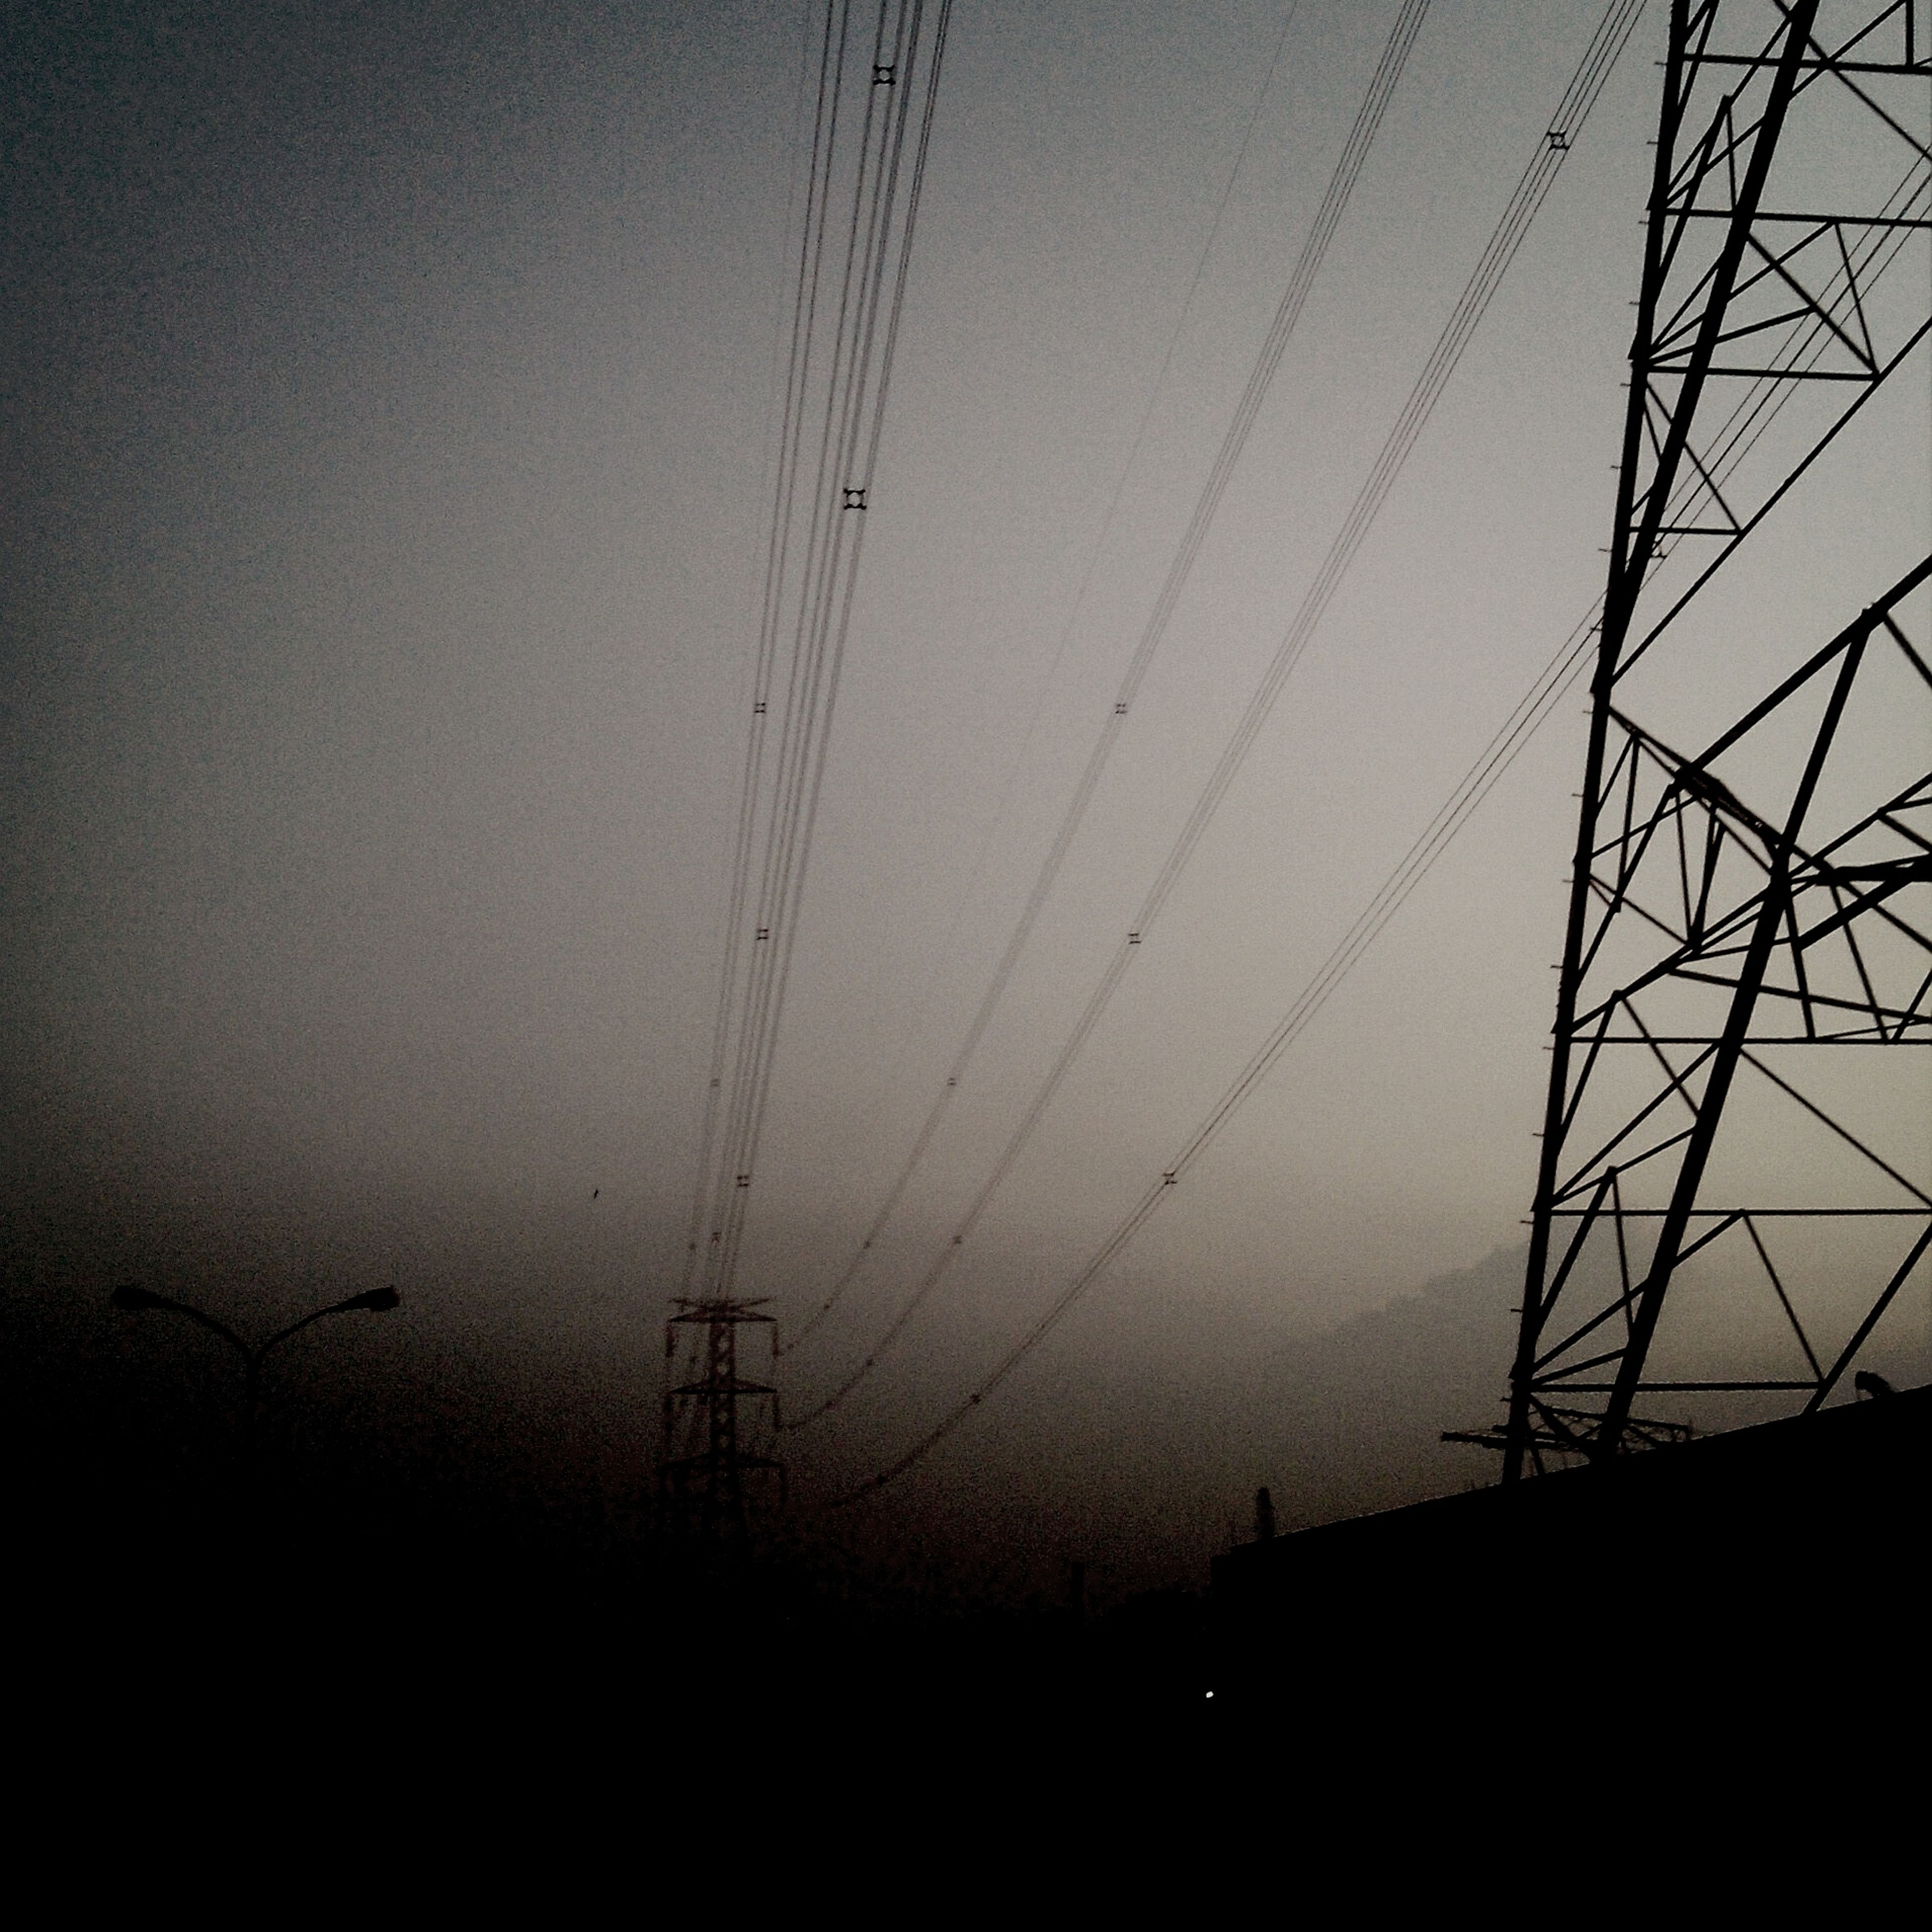 power line, electricity pylon, electricity, power supply, connection, silhouette, low angle view, fuel and power generation, technology, cable, sky, dusk, sunset, clear sky, nature, tranquility, power cable, outdoors, complexity, no people